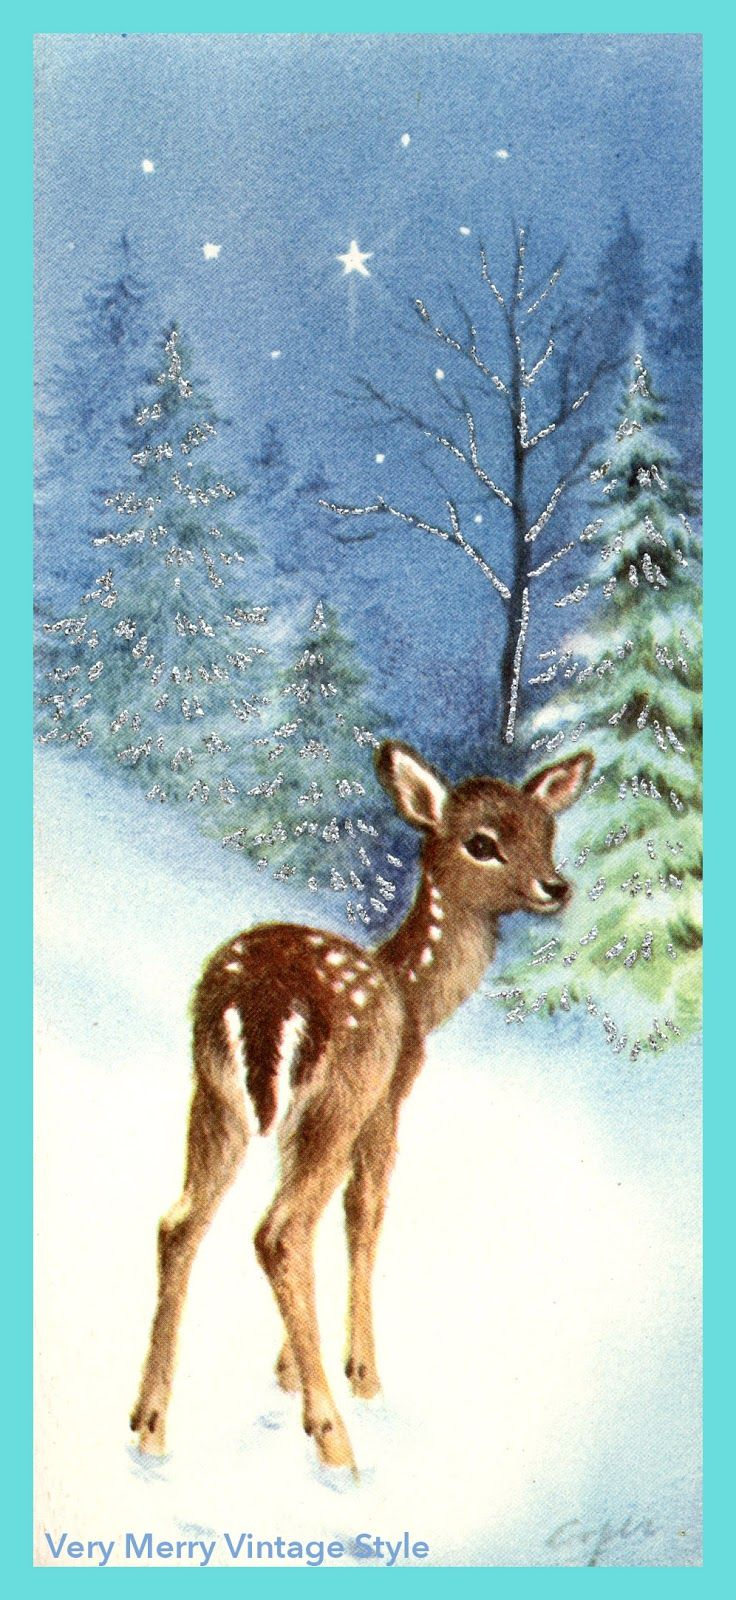 Very Merry Vintage Syle: Vintage Christmas Cards | ❤ Vintage ...